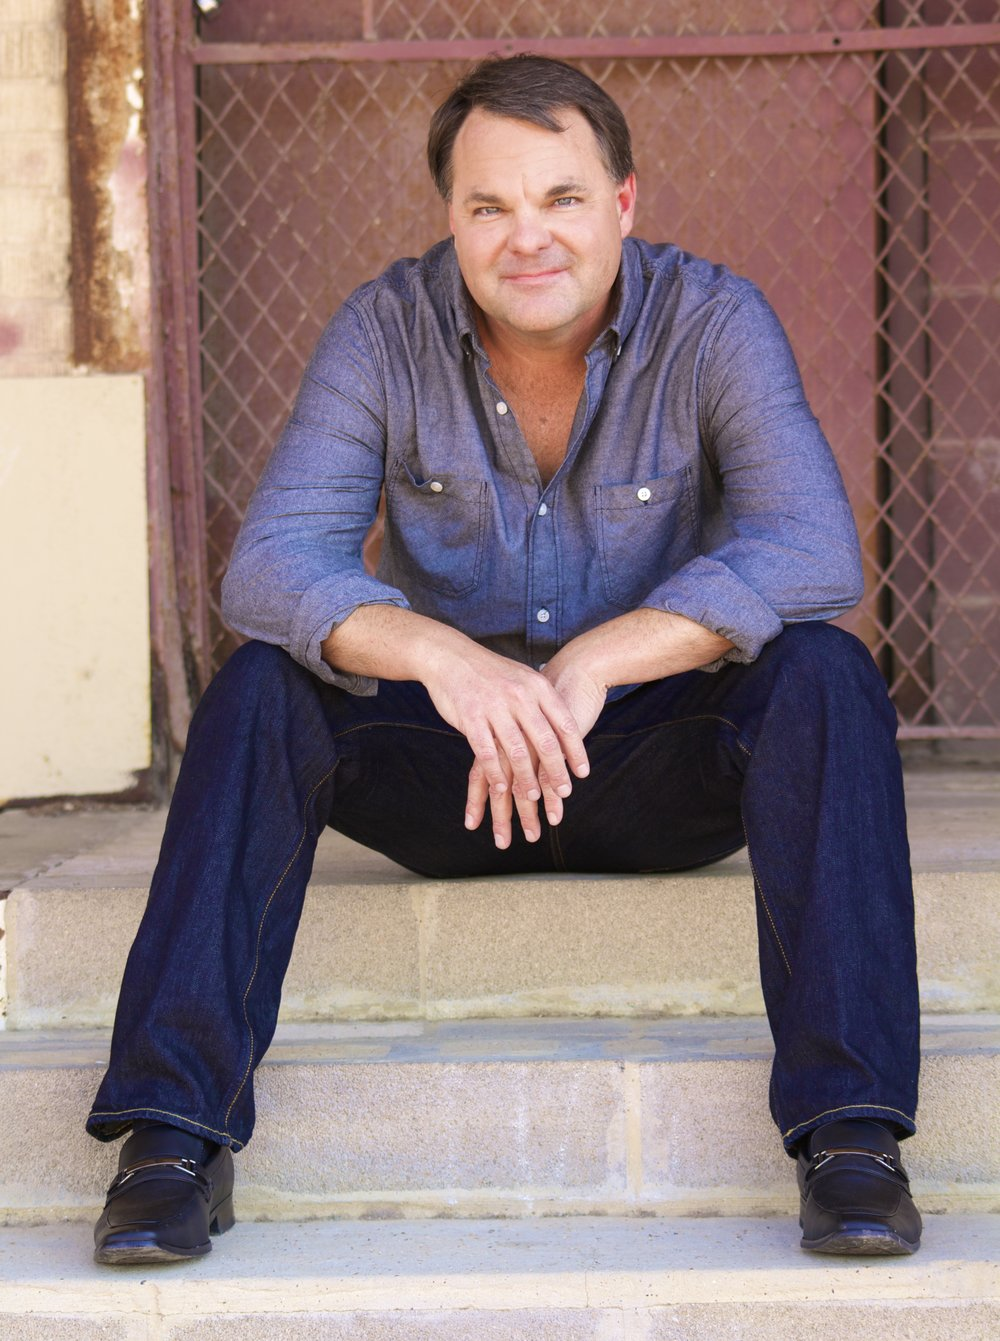 """Todd Barrow - """"If you don't know Todd Barrow, you don't know country music""""."""